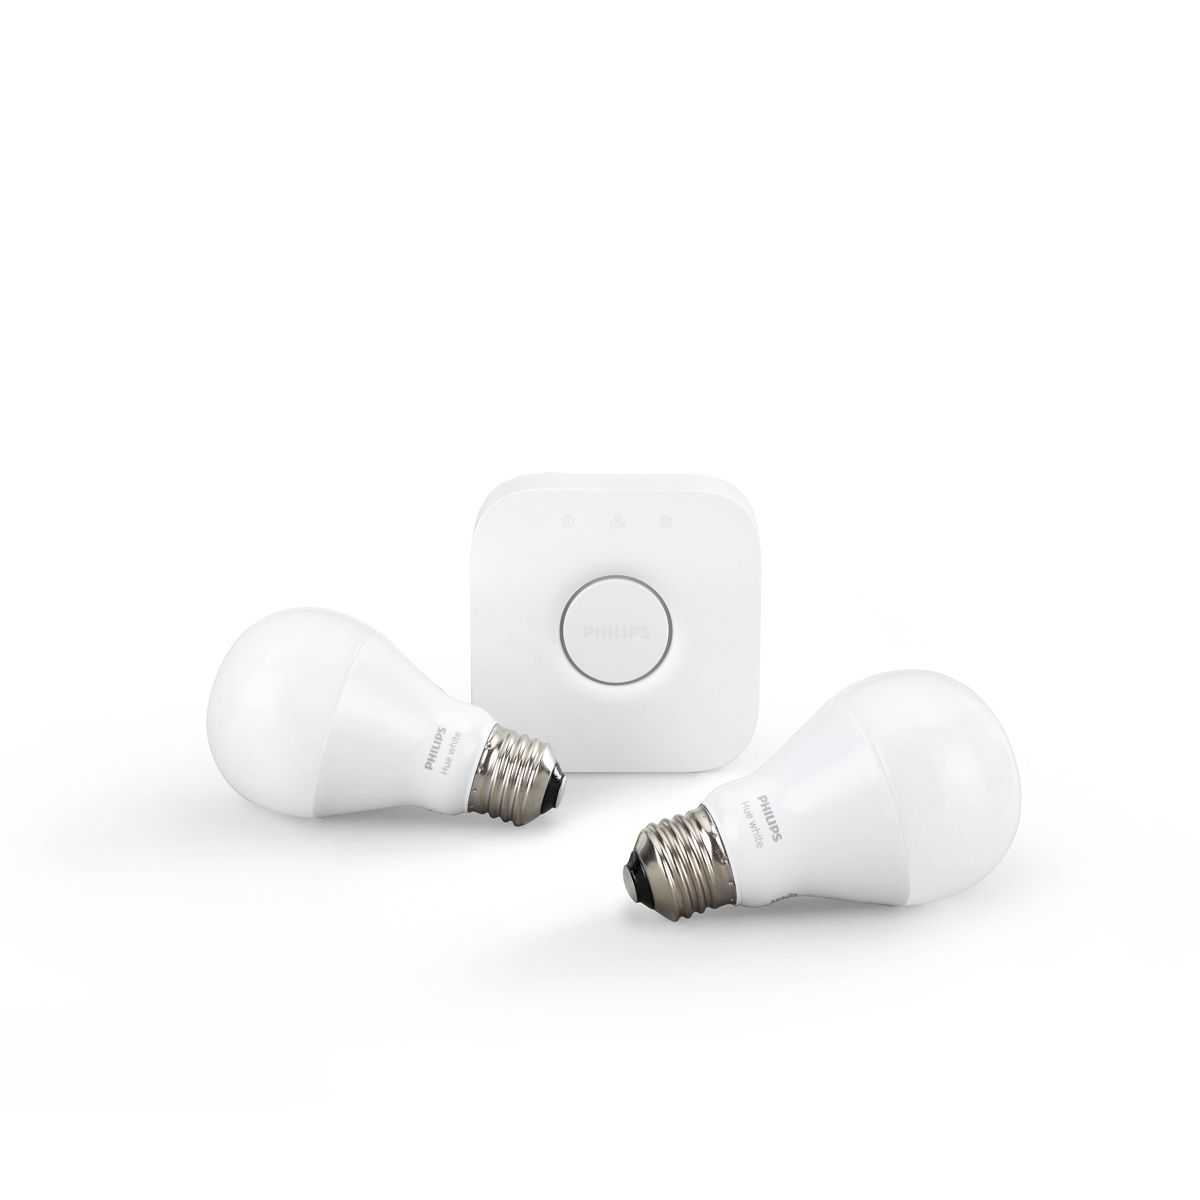 Hue White Starter Kit UK/EU E27 v2